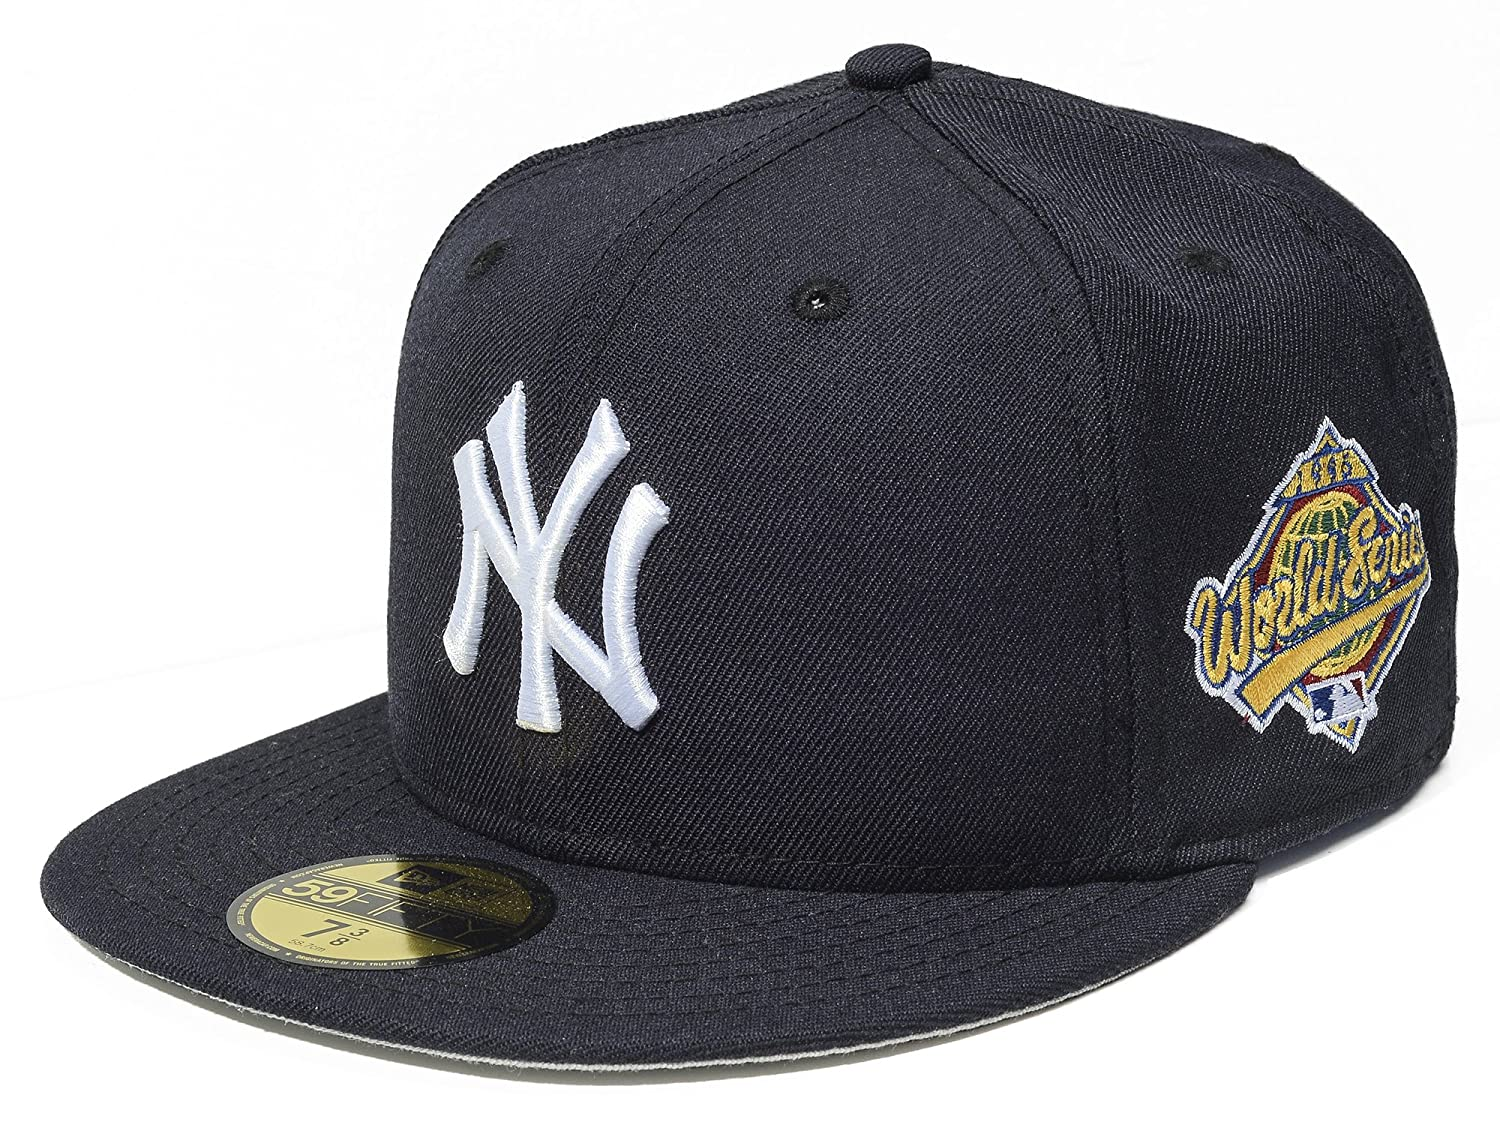 c14830cefac Amazon.com   New York Yankee Navy World Series 1996 Side Patch ...